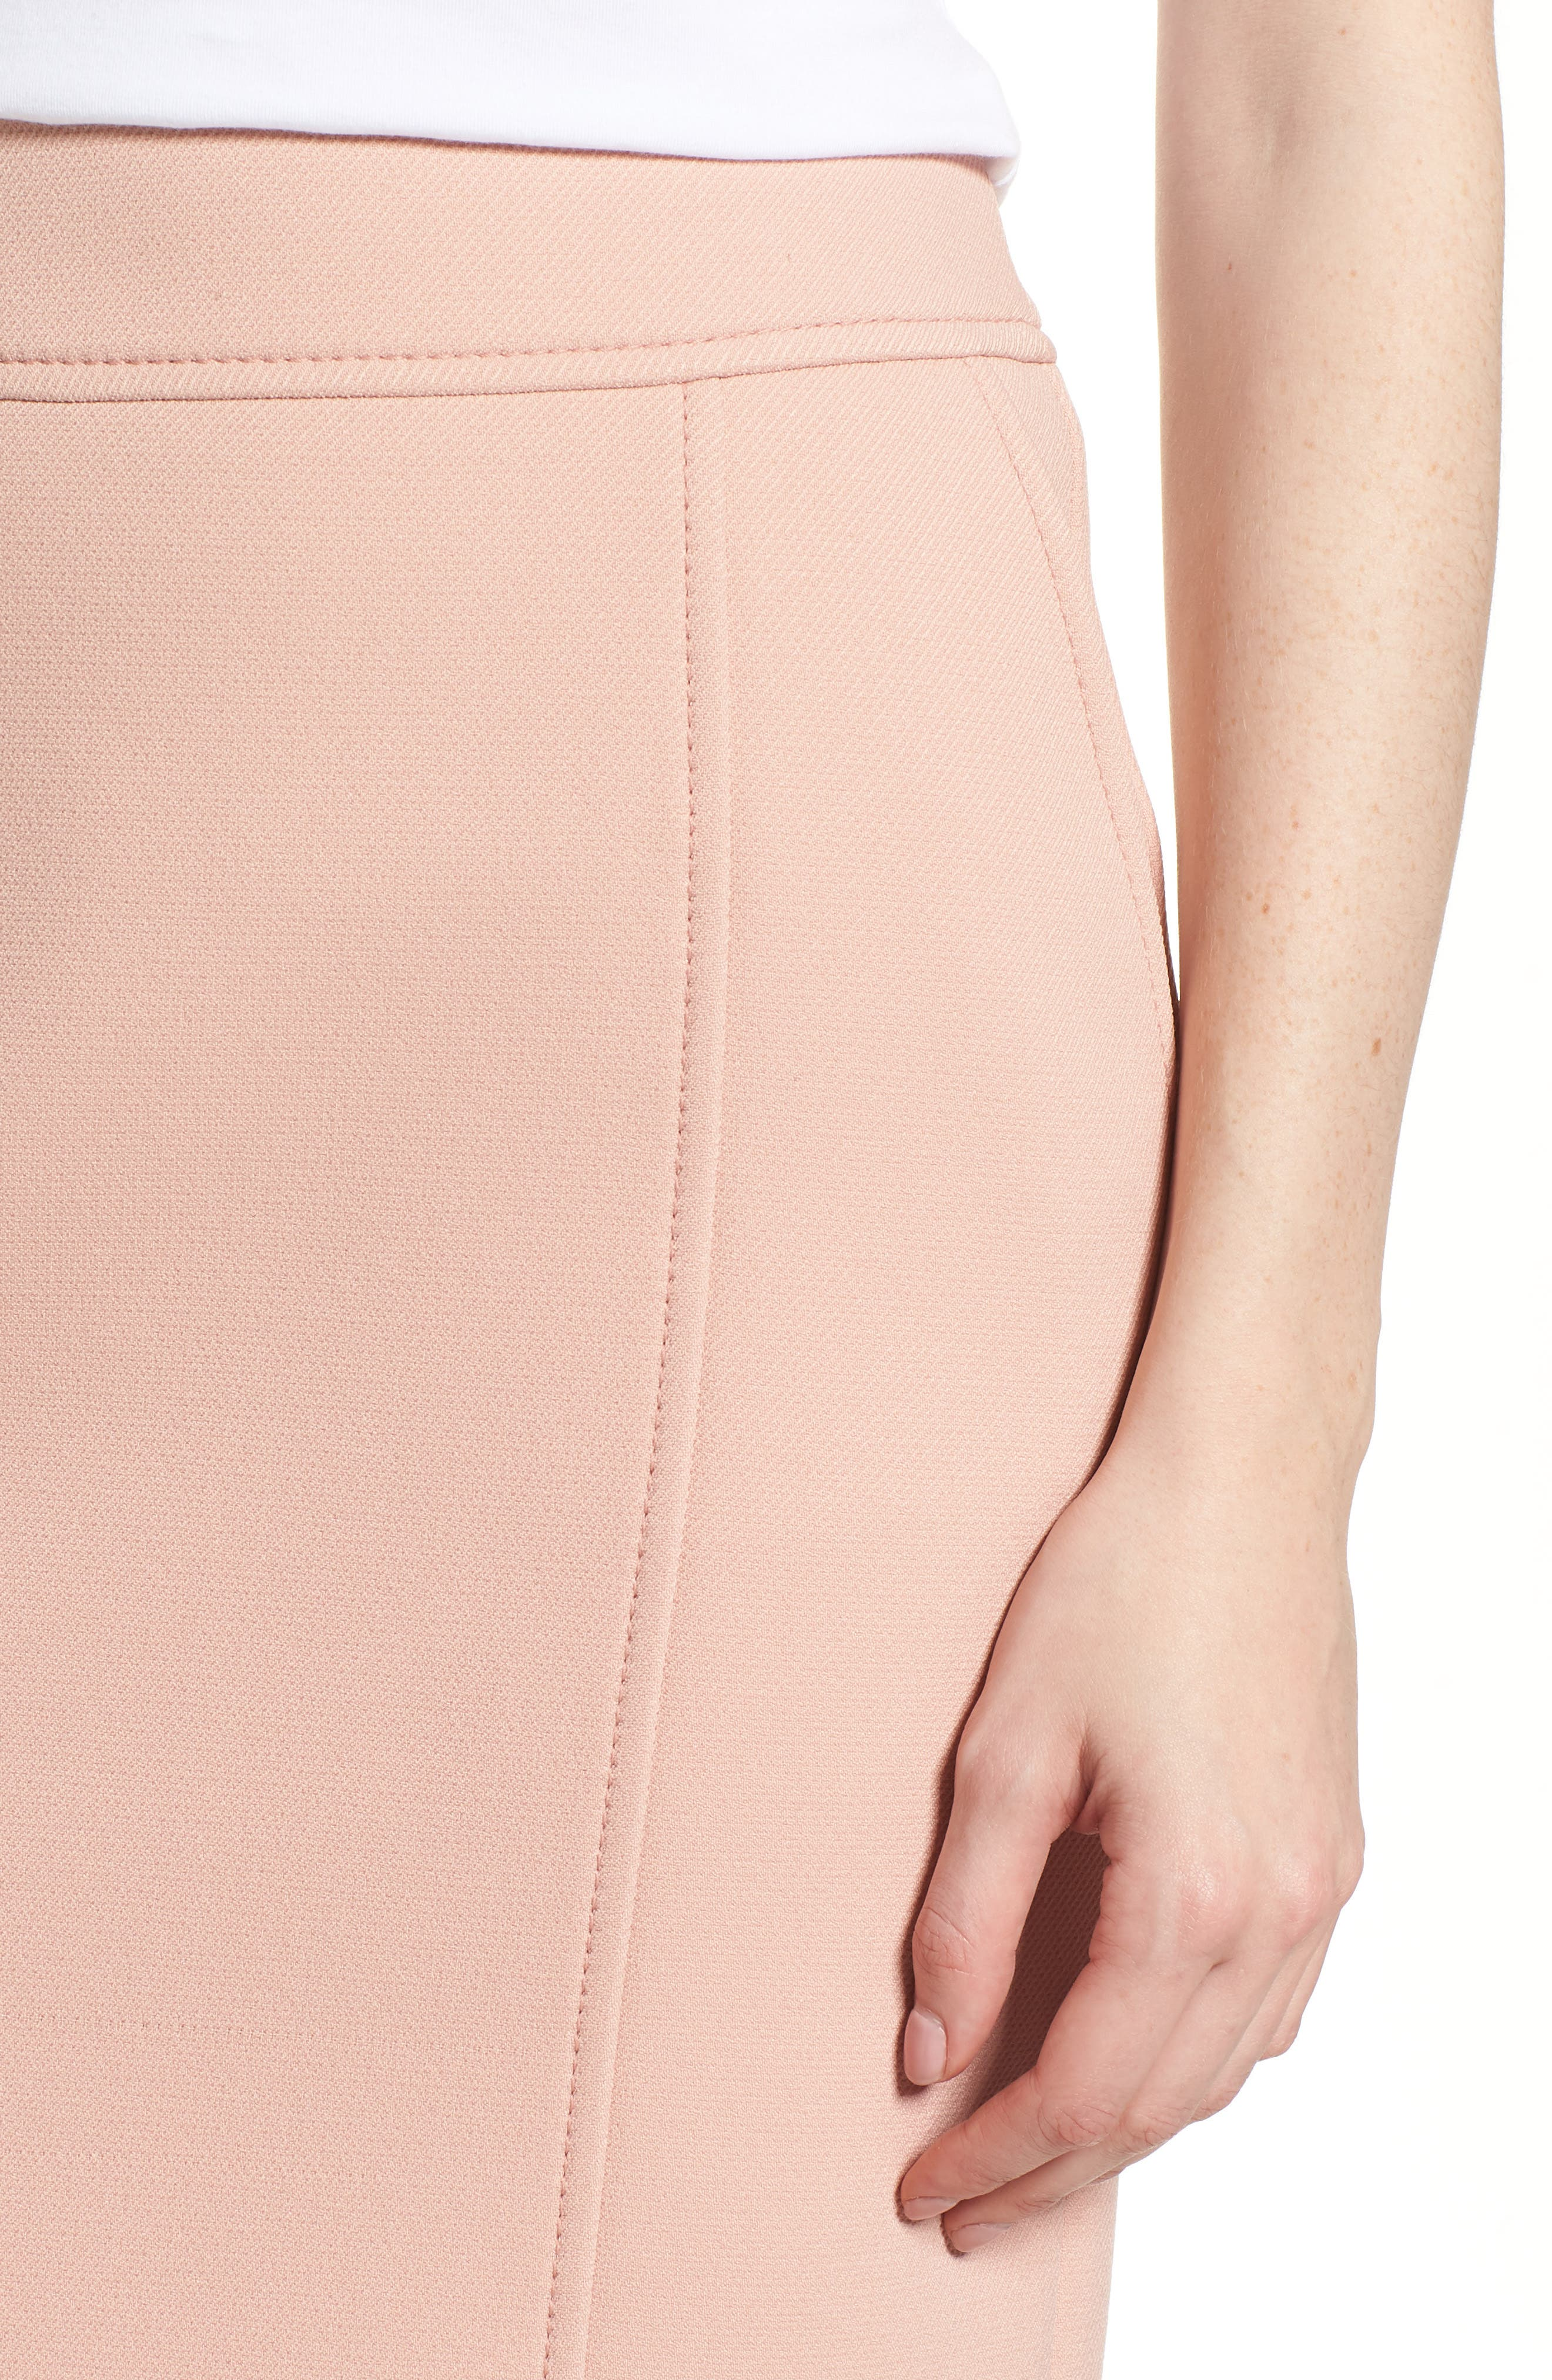 Vuleama Compact Twill Pencil Skirt,                             Alternate thumbnail 4, color,                             682